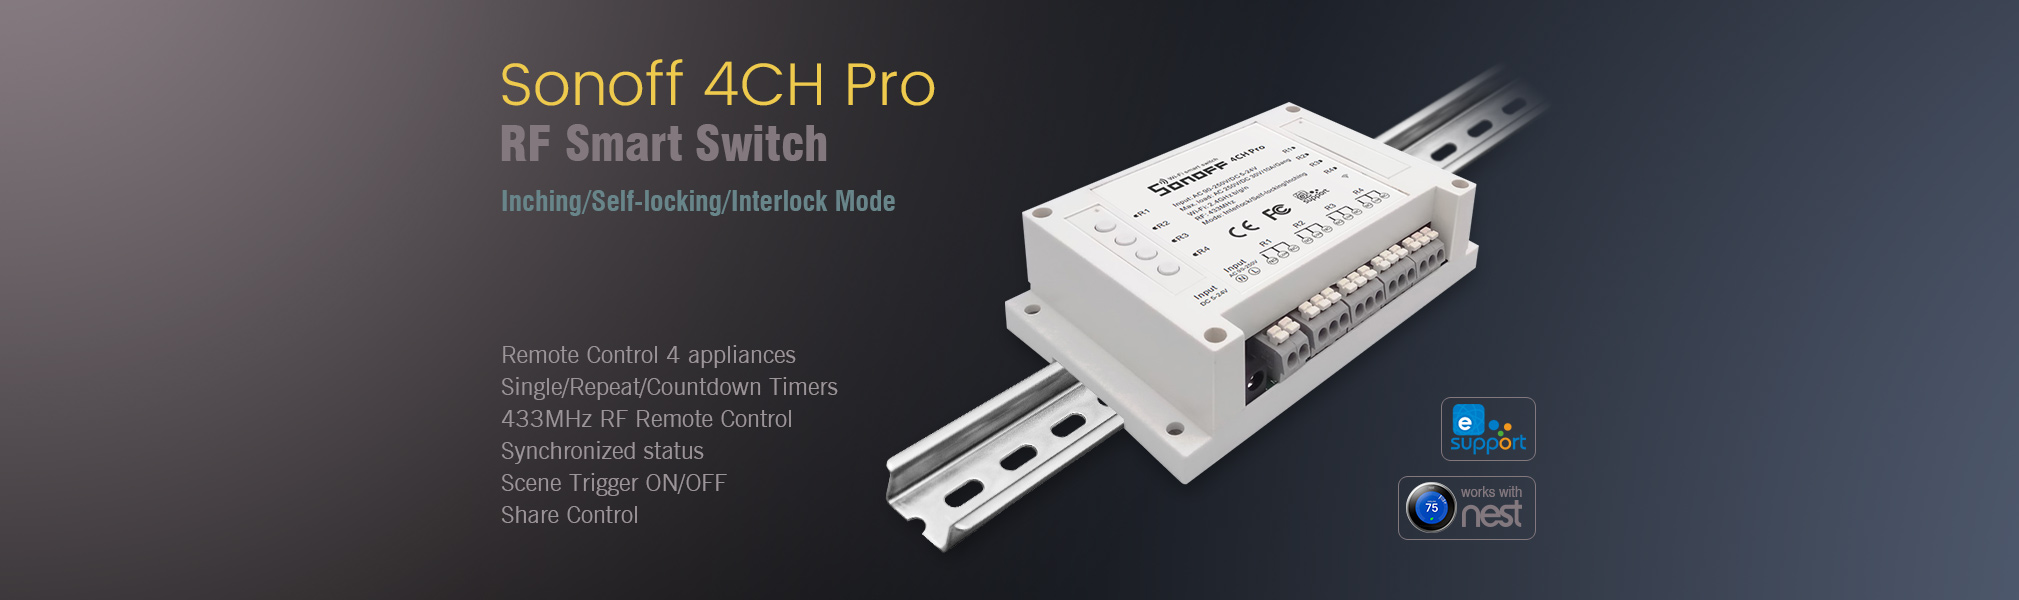 Sonoff 4ch Pro Wifi Internet Switch Linked To Alexa Chatteris Solid State Relay Amazon I Have Had An Dot For A While And Use The Interactive Plugs Lights All Time One Of Is My Ham Radio Psu